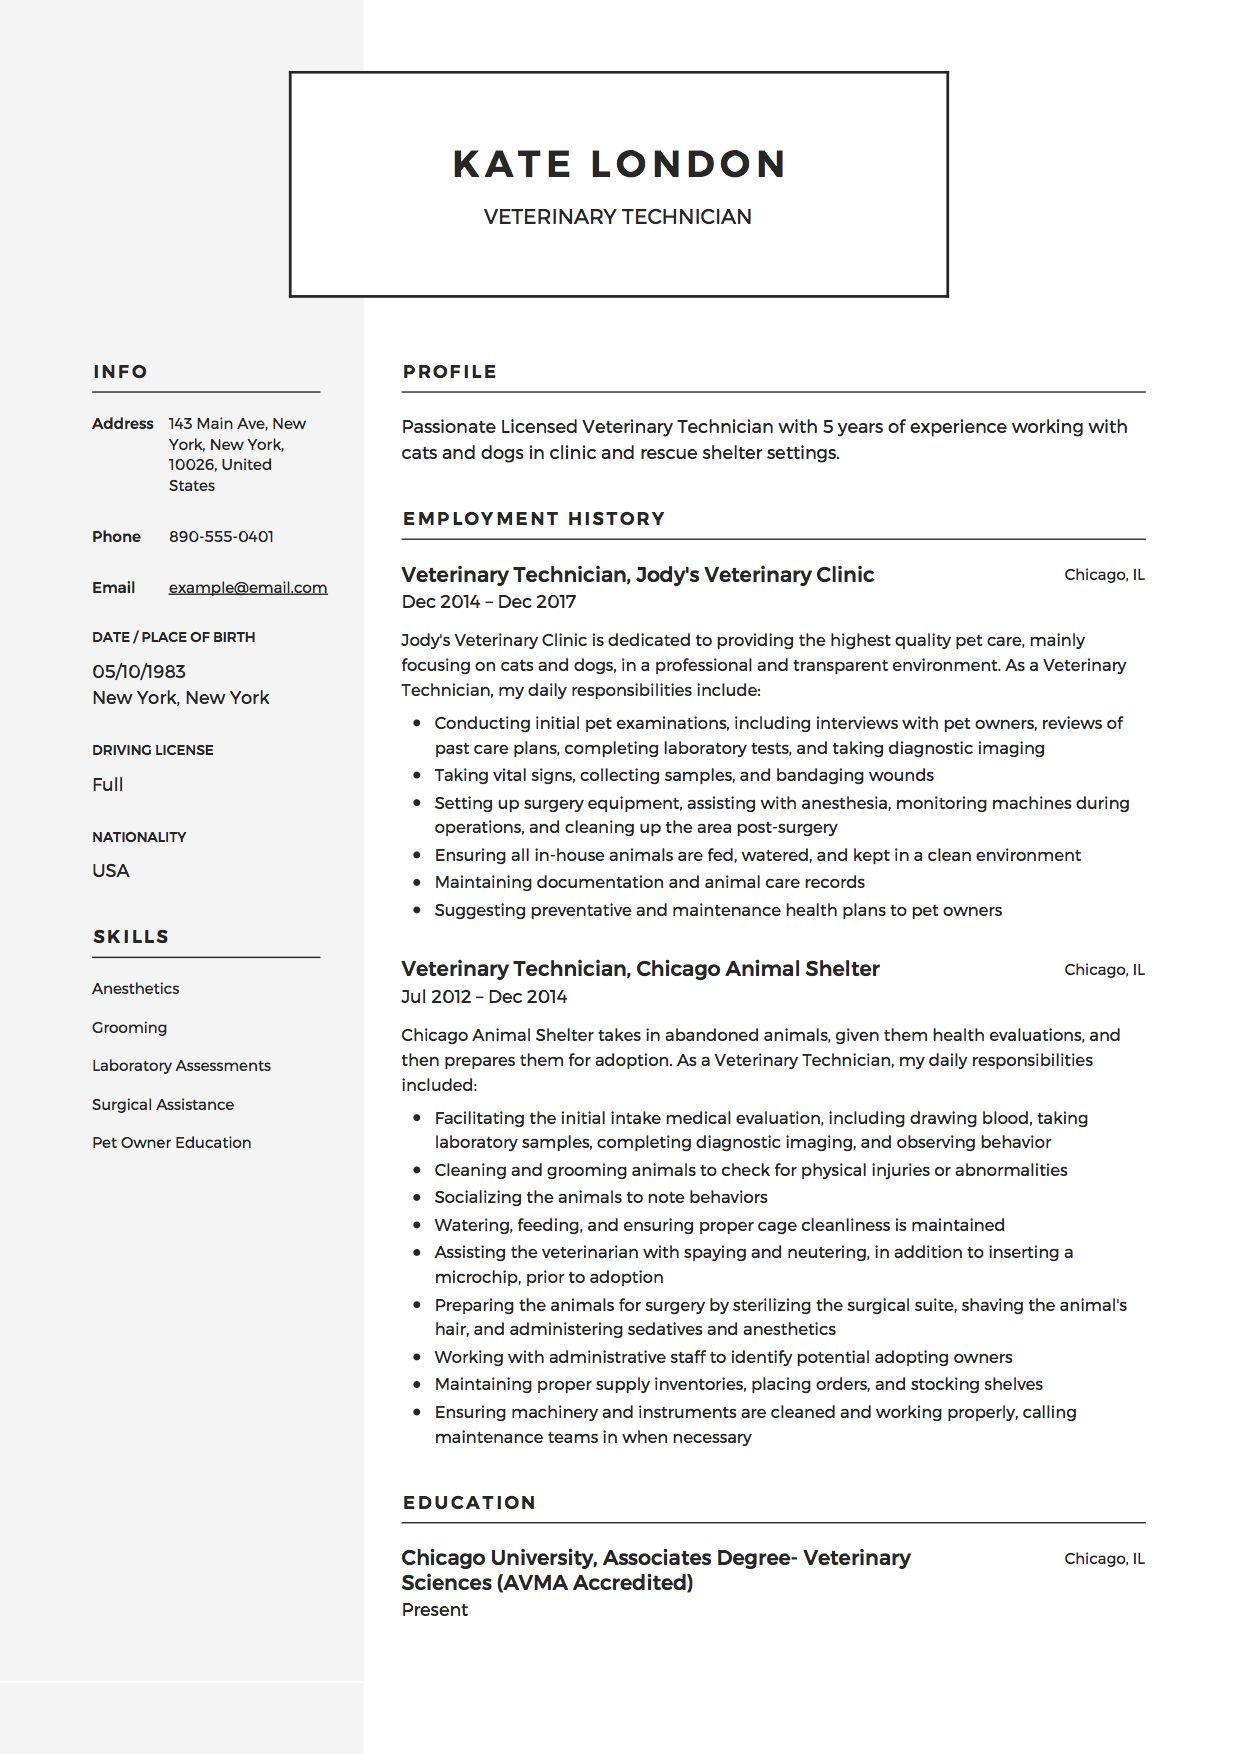 Veterinary Technician Resume Example Medical Assistant Resume Vet Tech Student Veterinary Technician